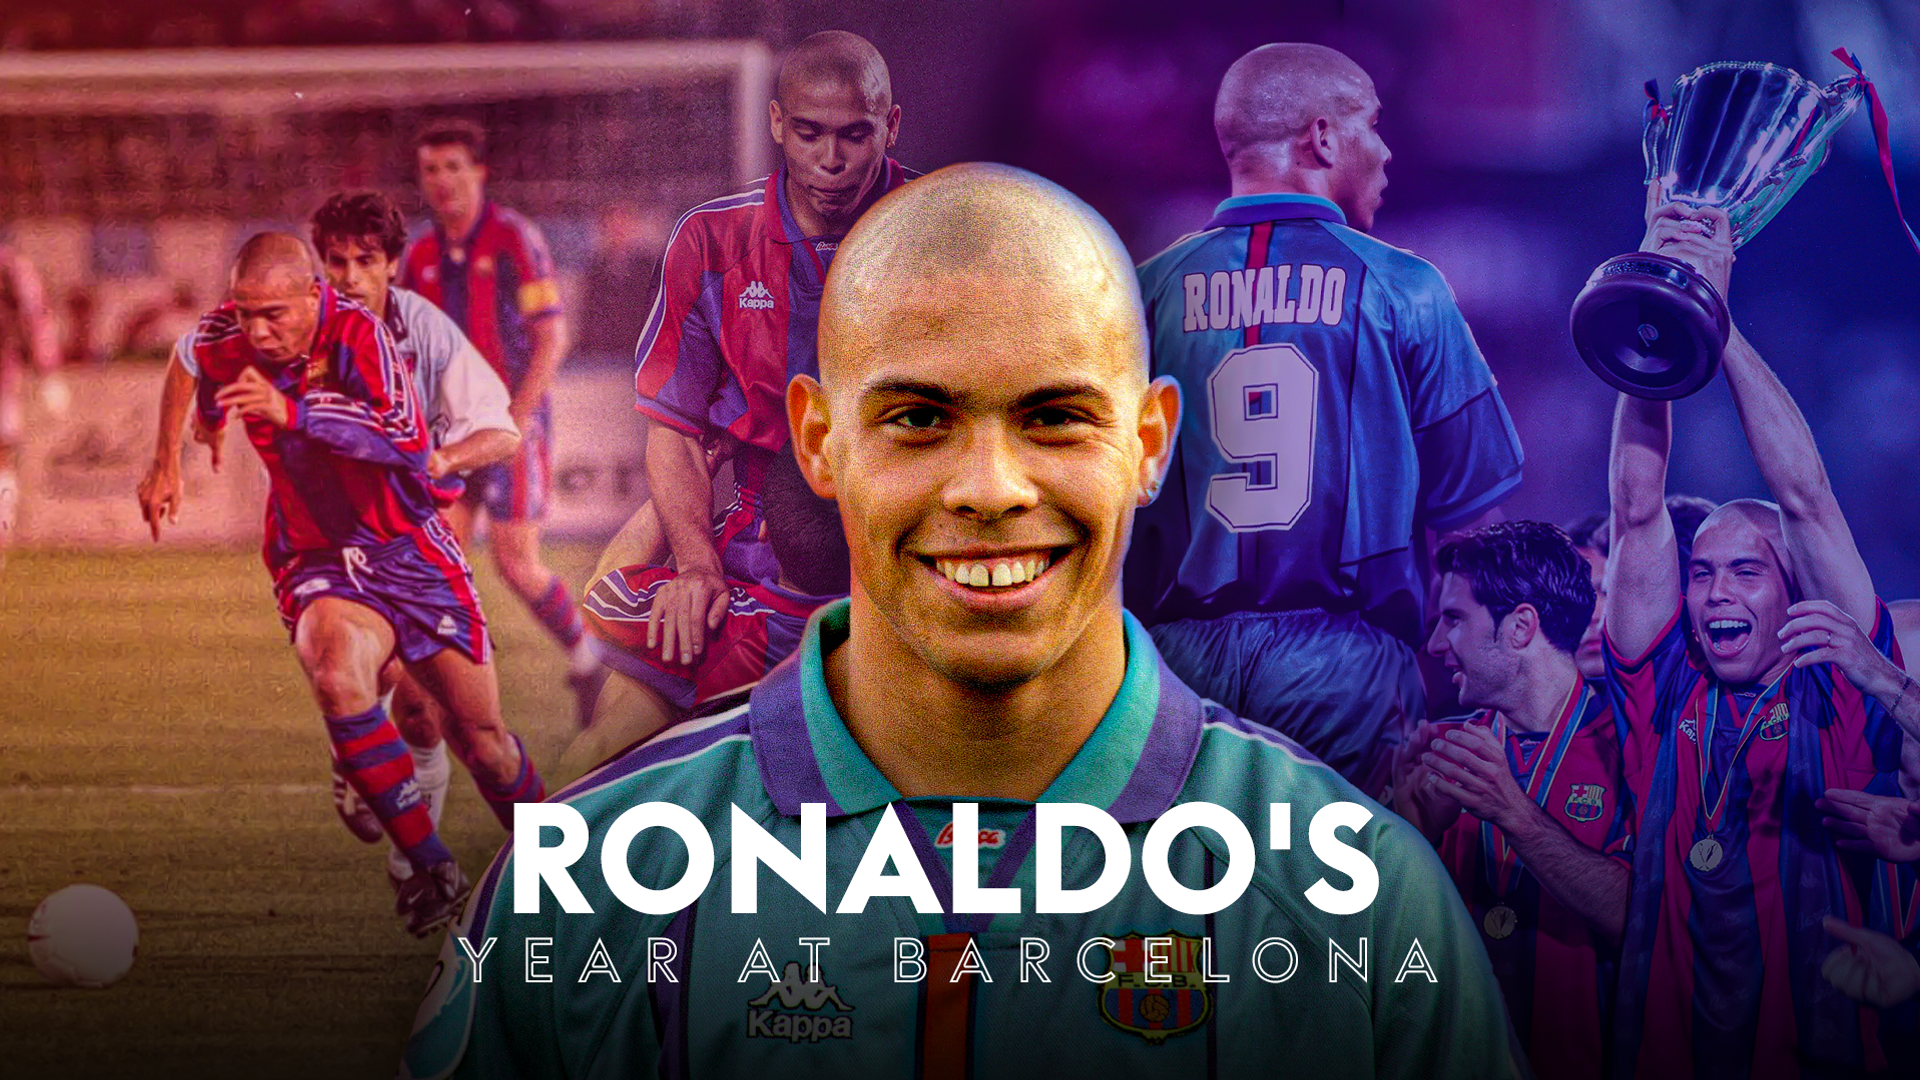 Ronaldo's year at Barcelona